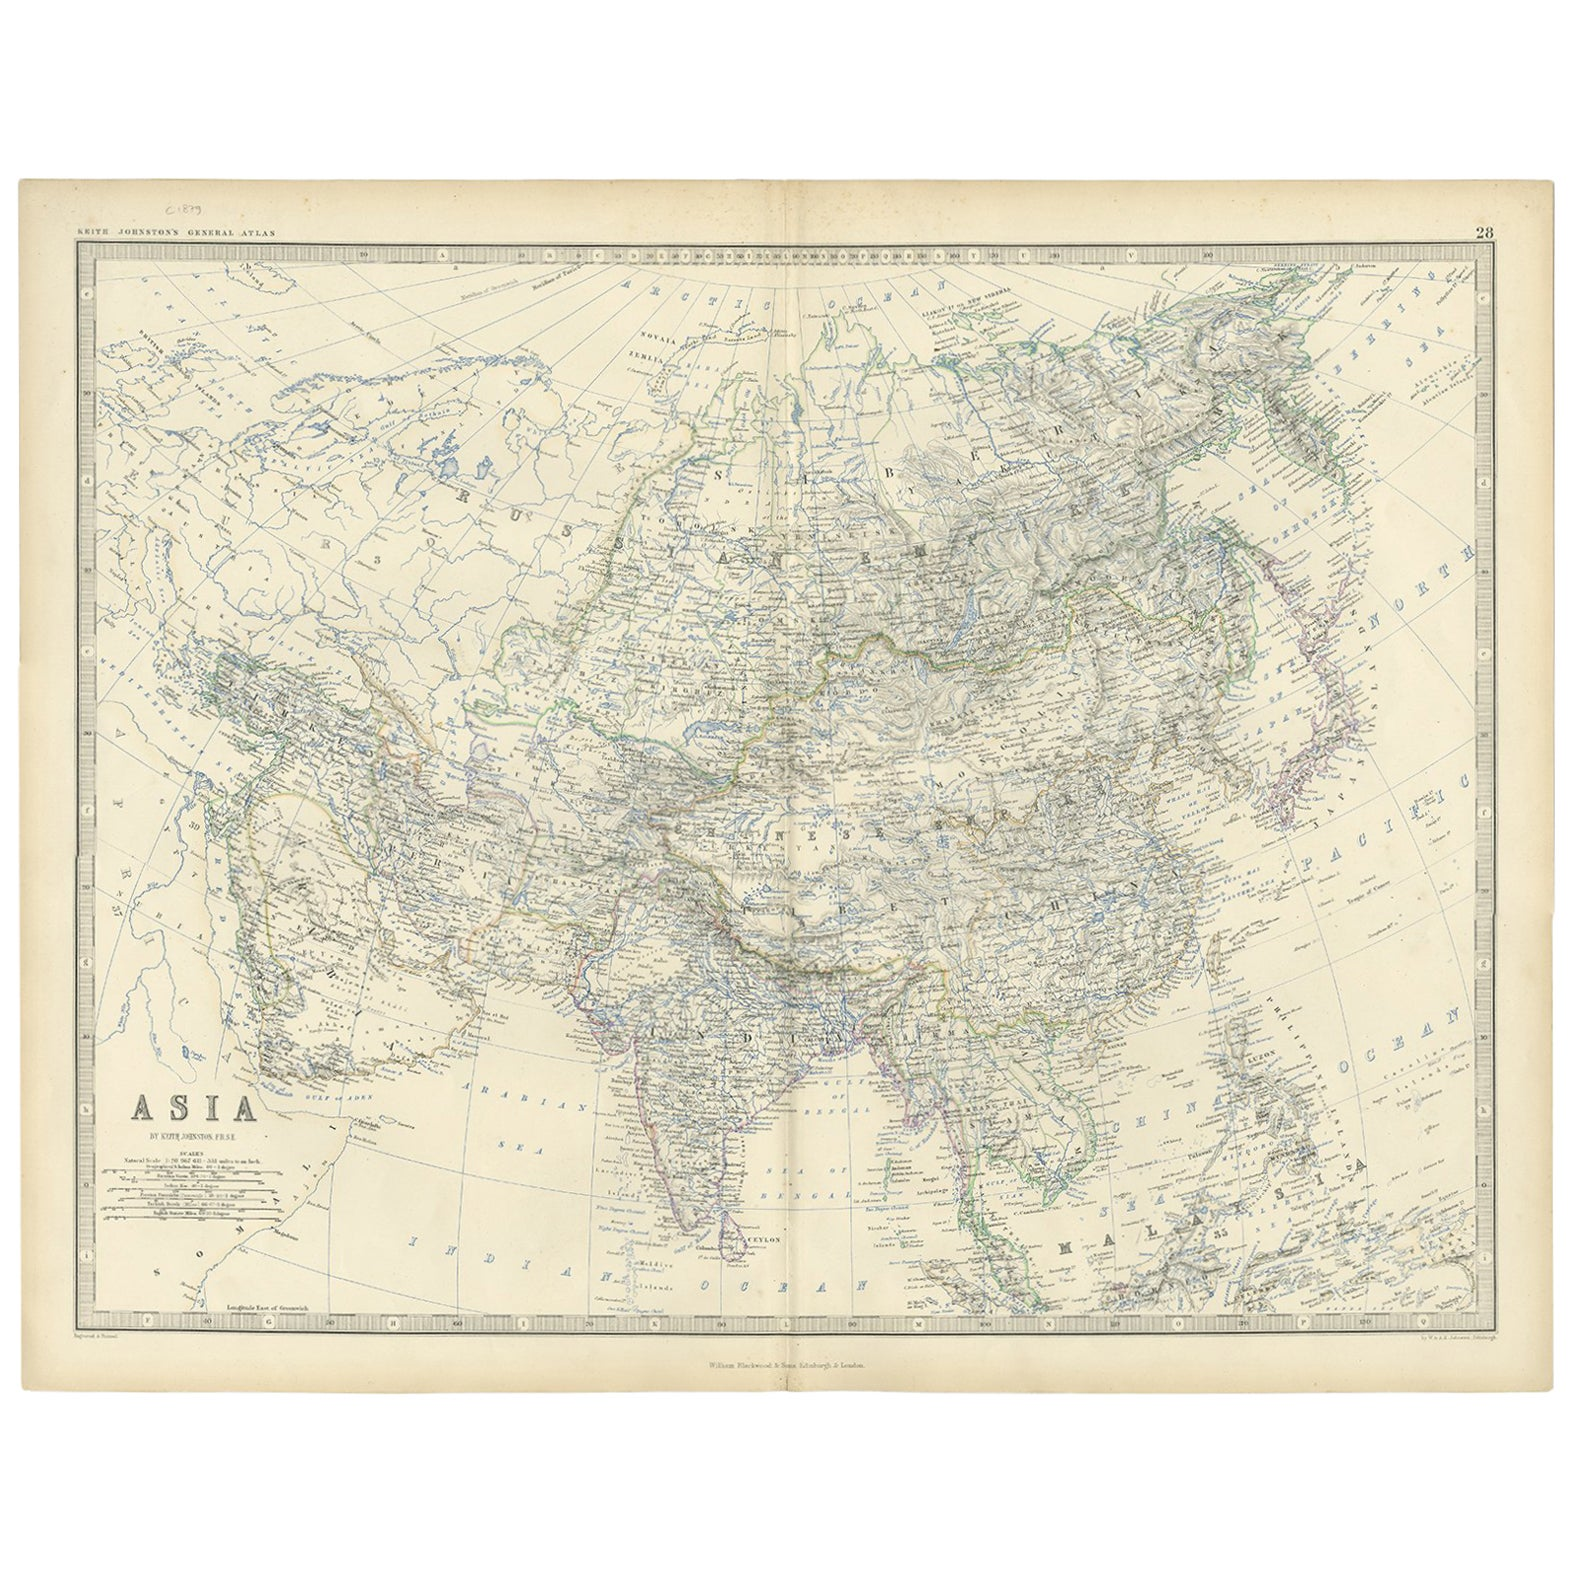 Antique Map of Asia by K. Johnston, circa 1879